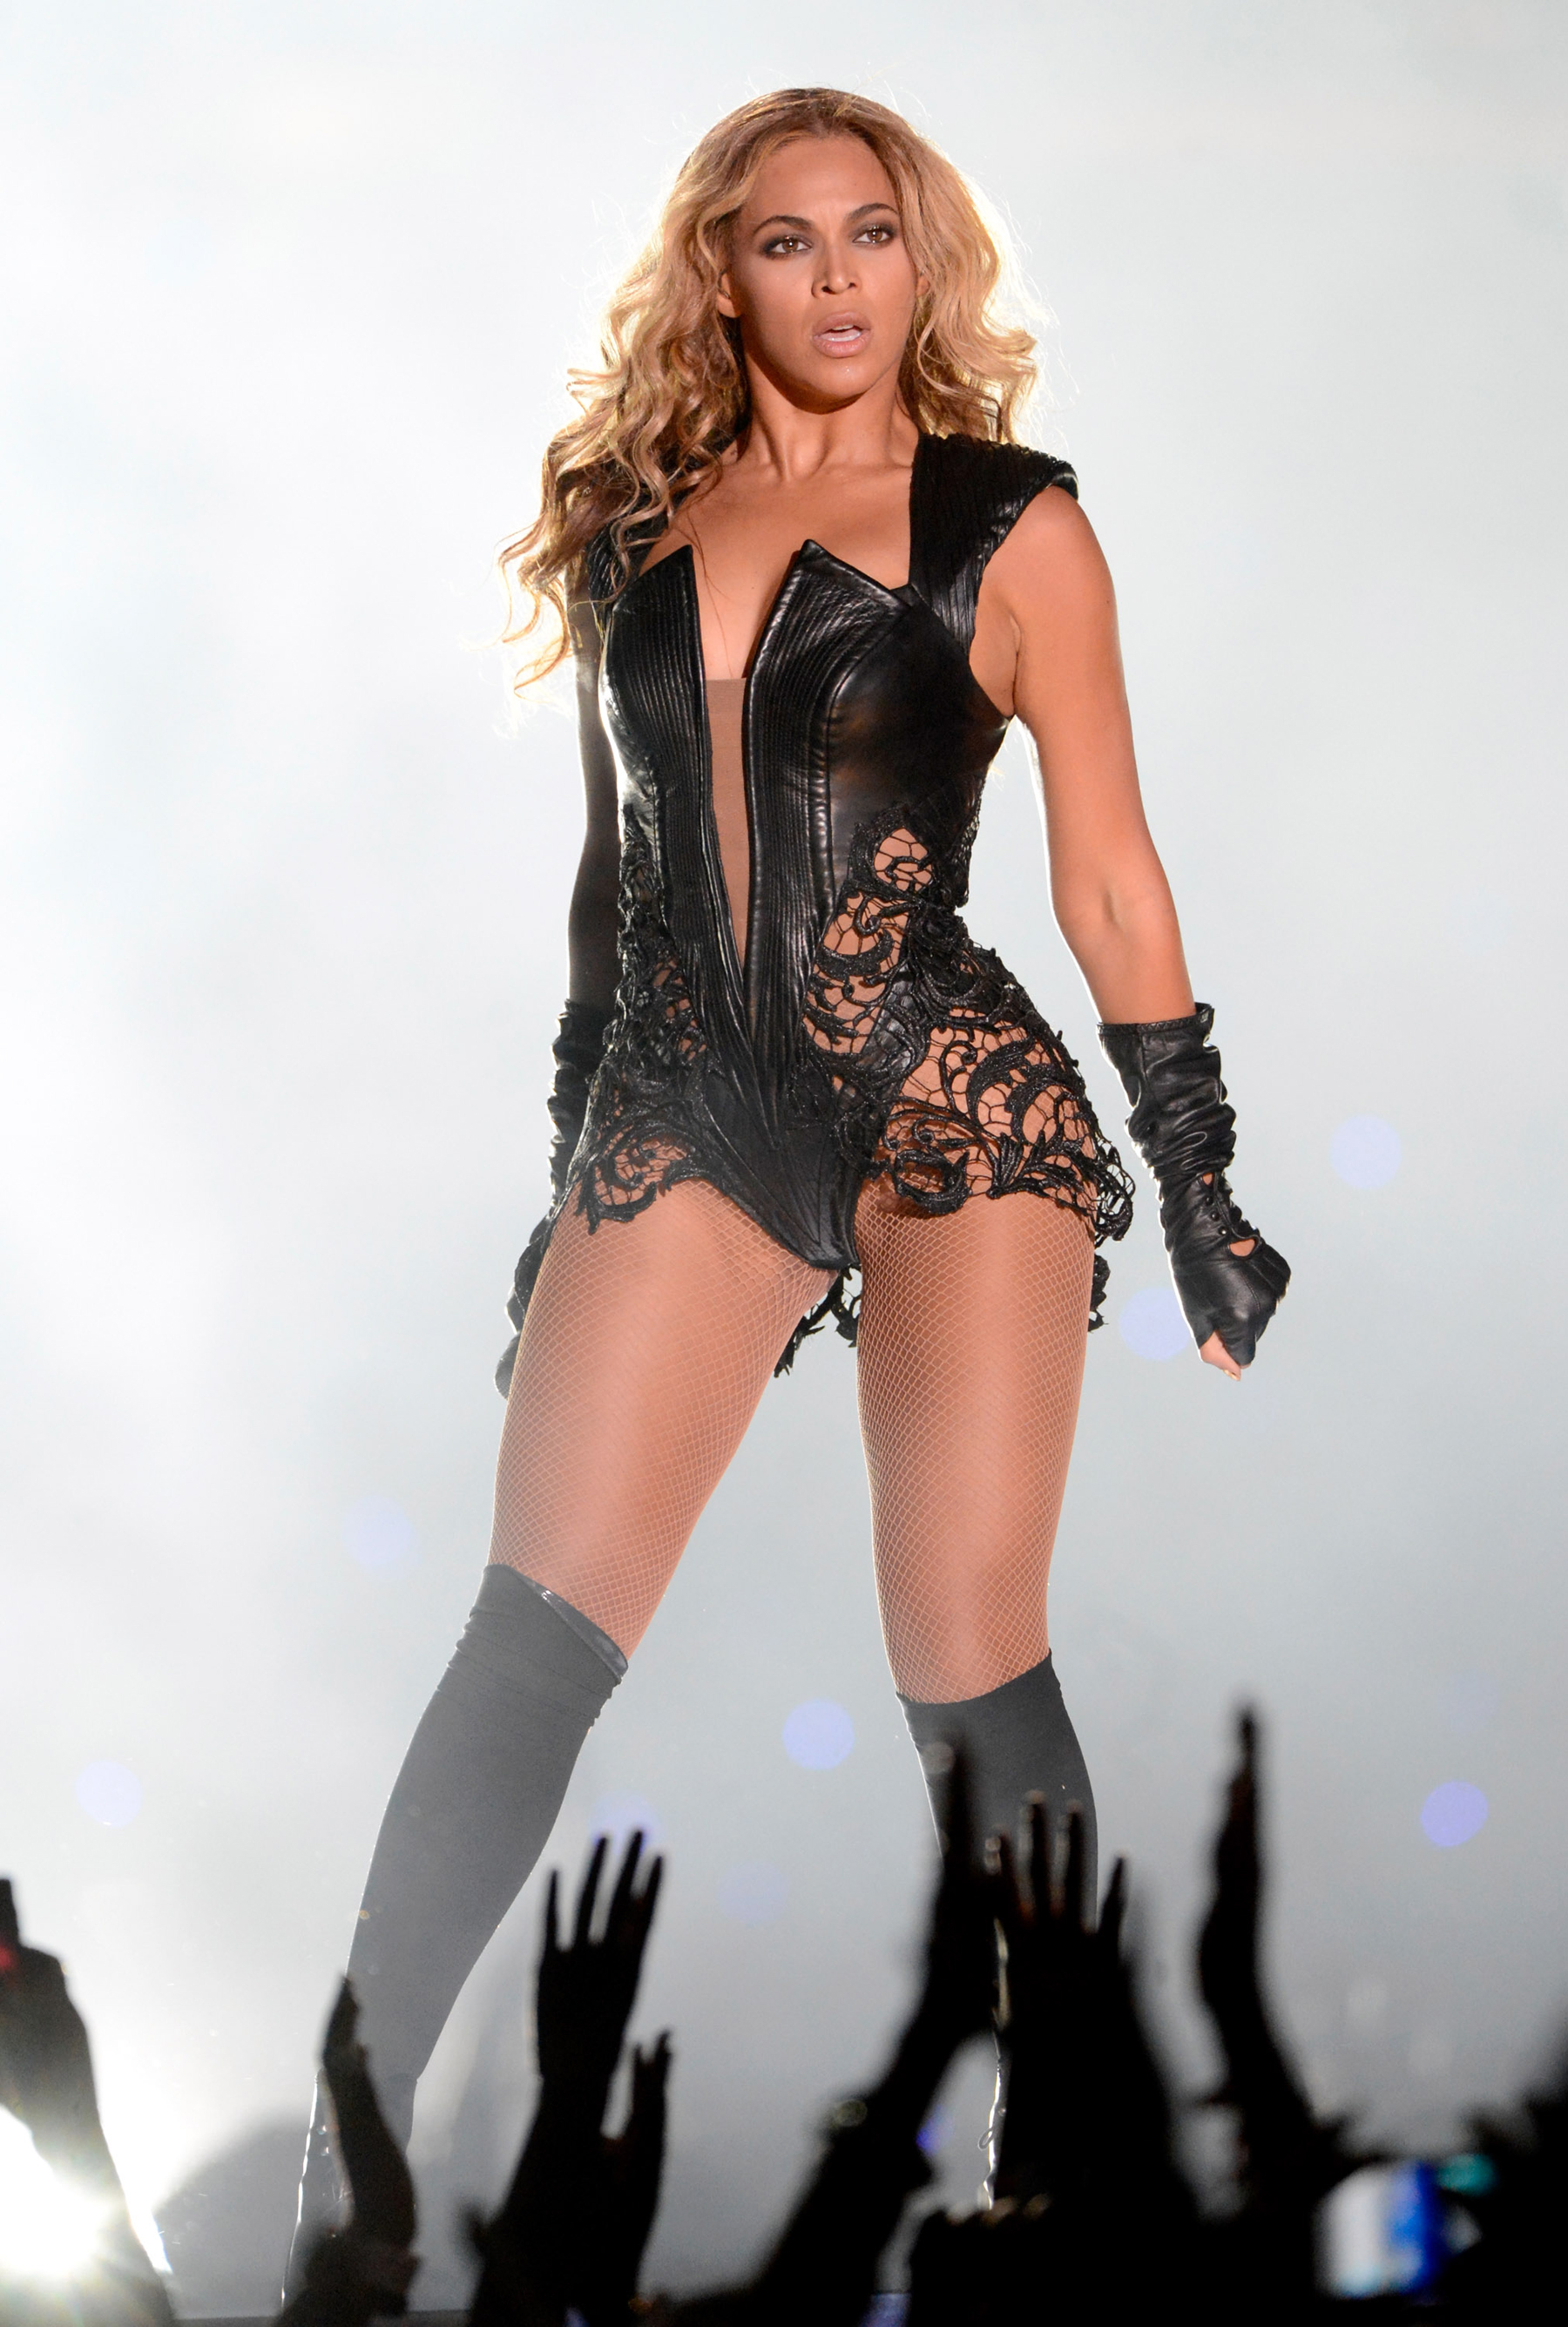 Beyonce Fashion Exhibit Coming to Rock and Roll Hall Museum